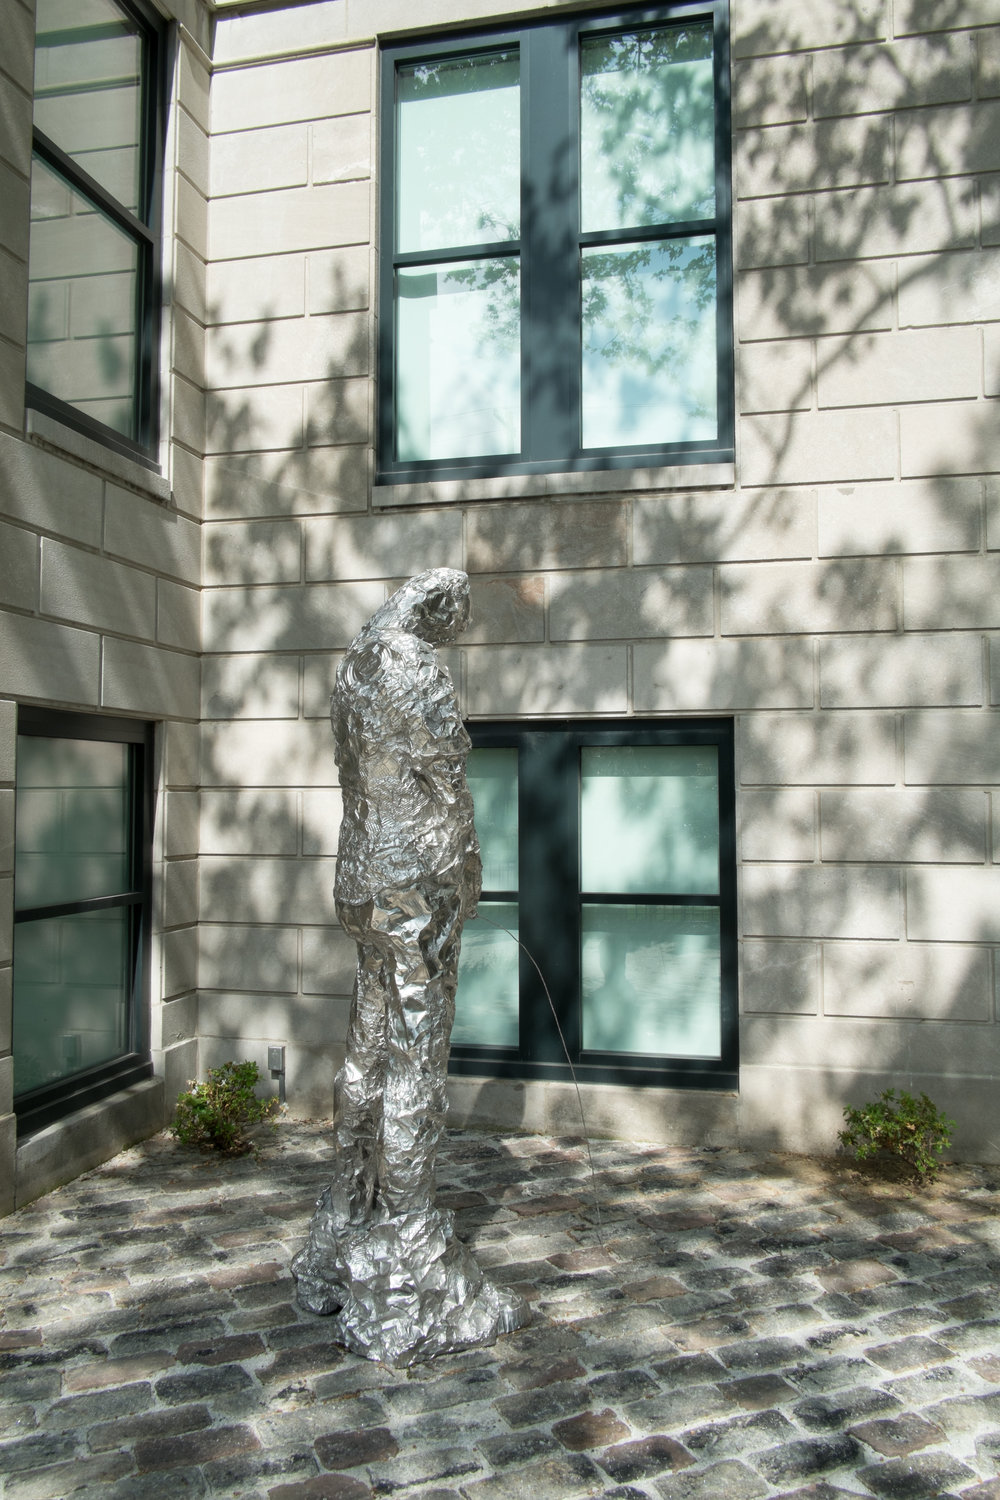 Untitled (Peeing Figure)  2012, Stainless steel cast from aluminum foil and oven roaster tins  96 x 30 x 27 in.